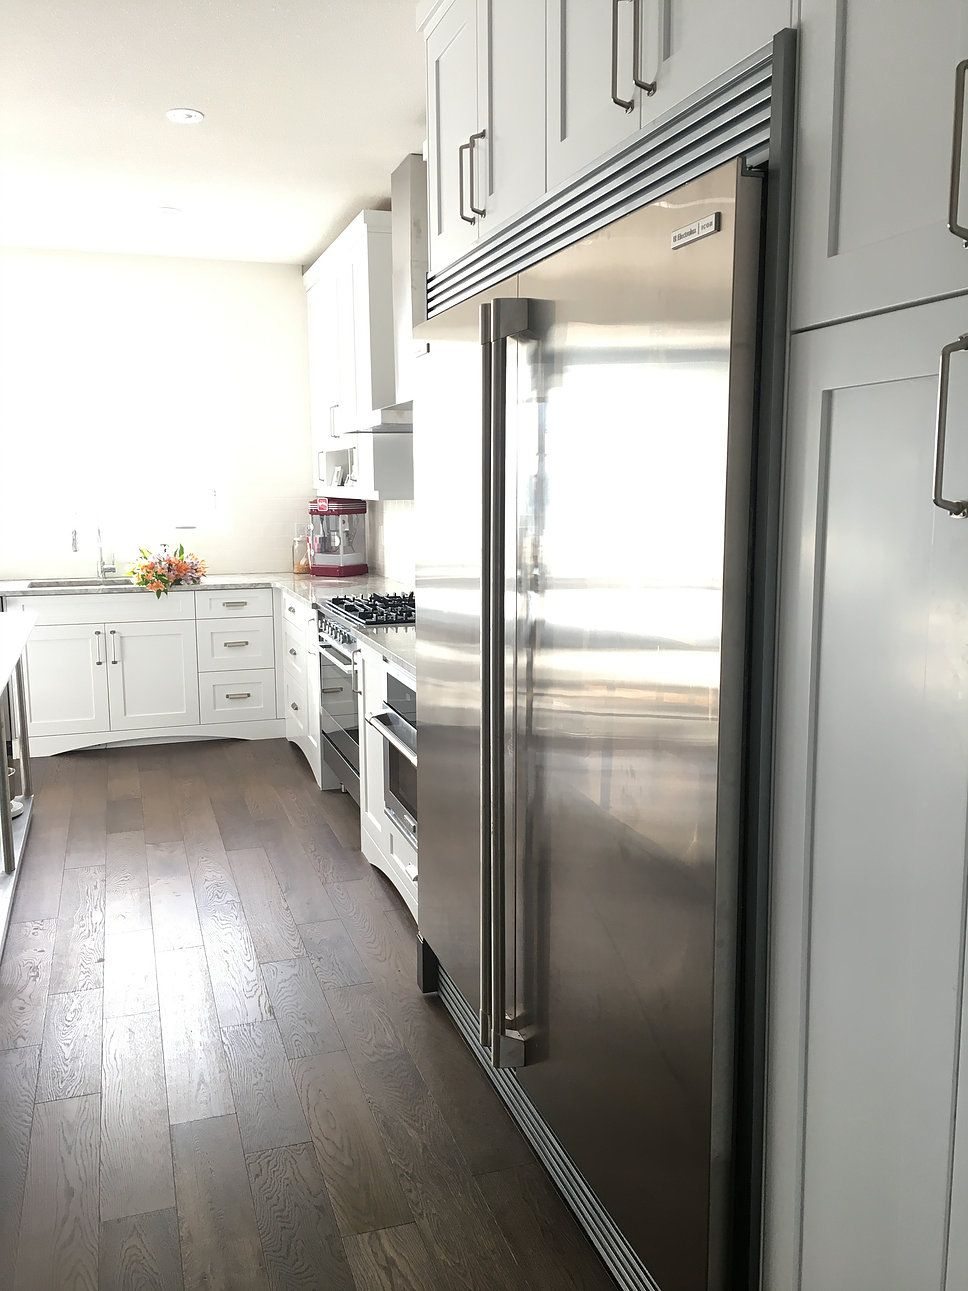 Electrolux side by side fridge freezer with built in trim kit. | New ...